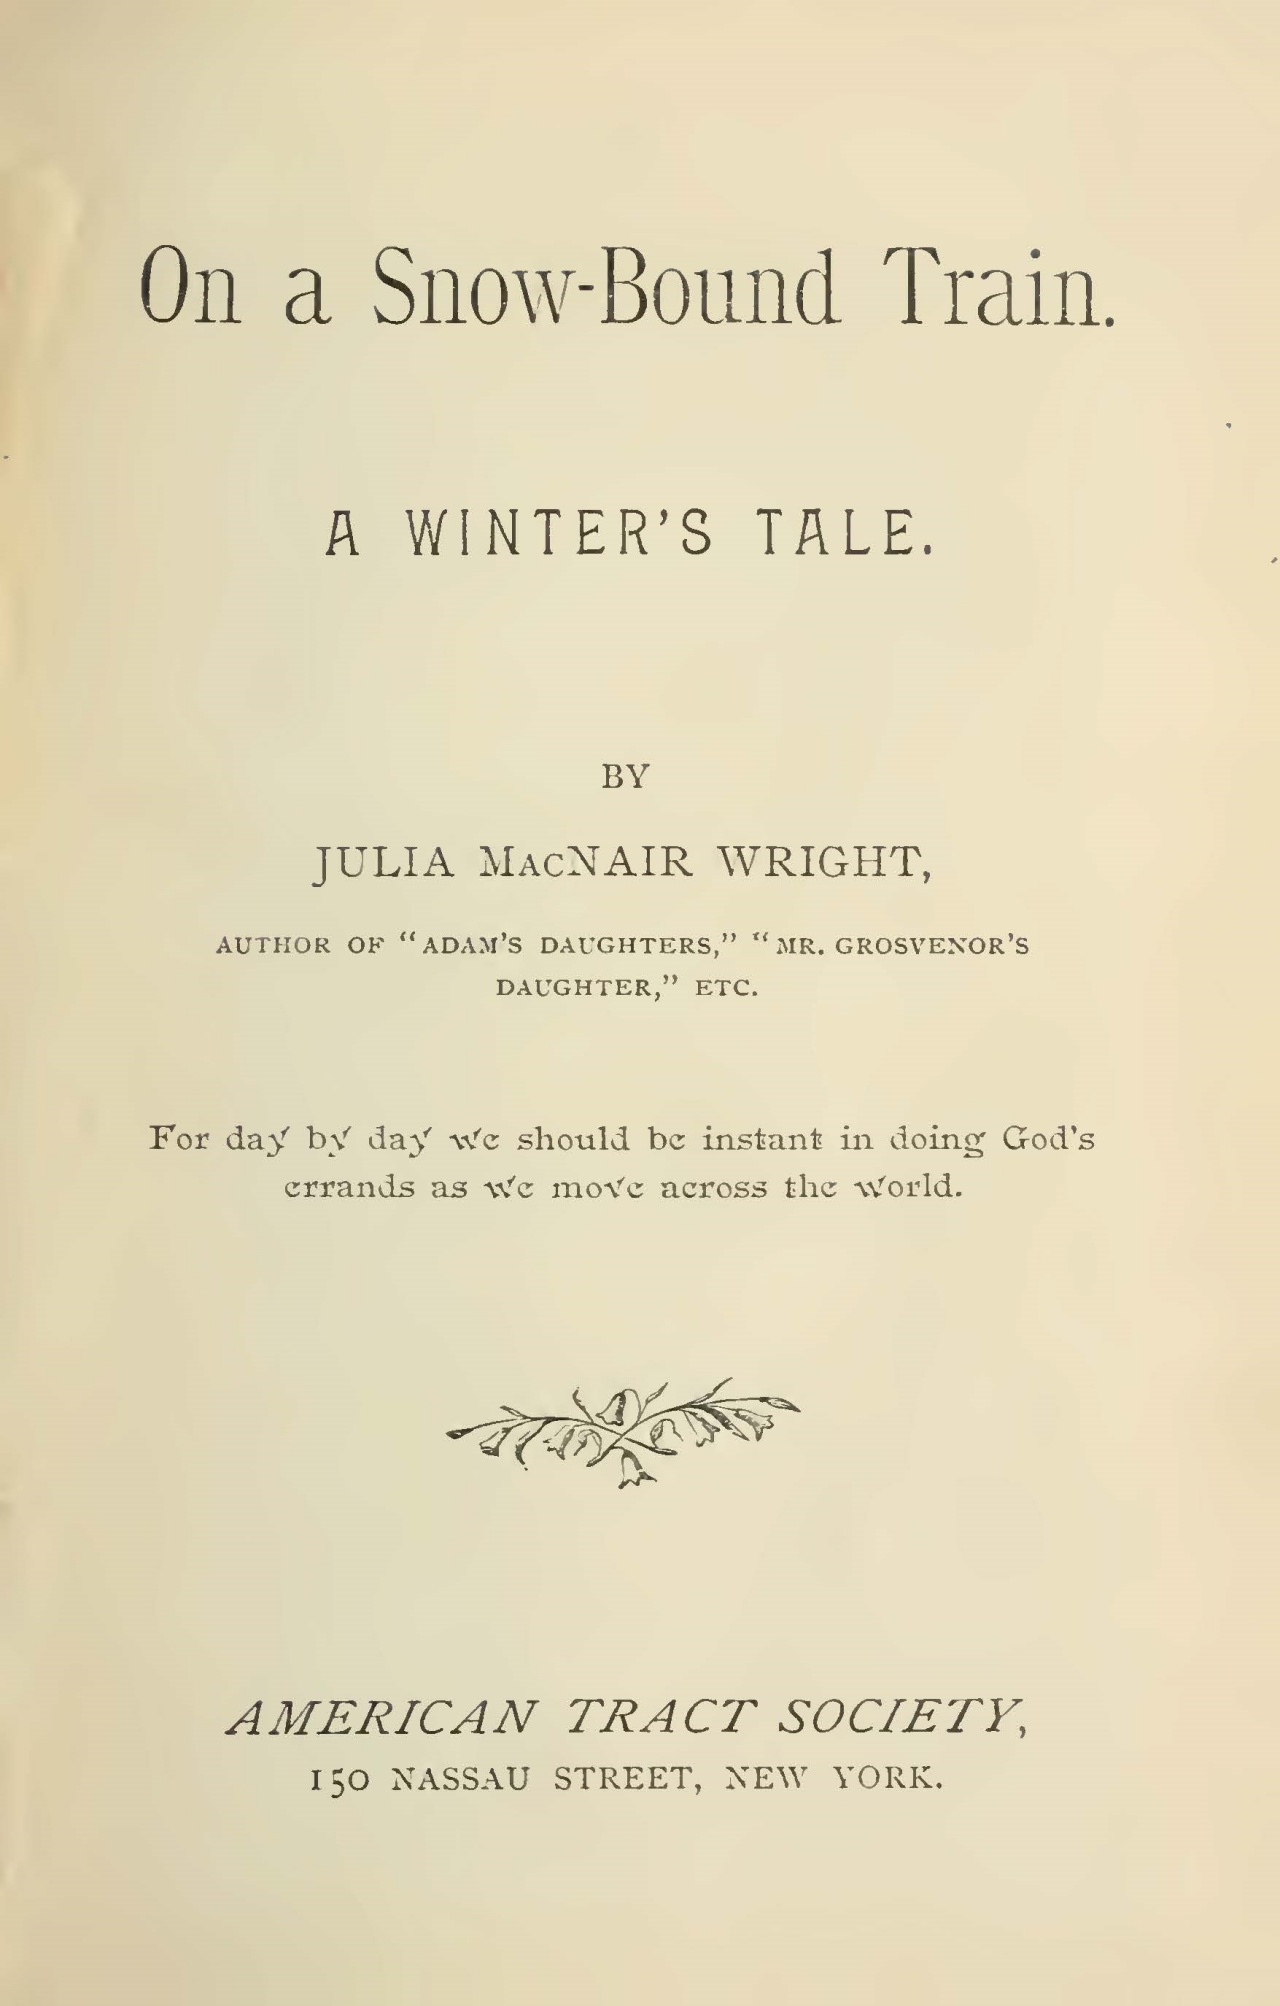 Wright, Julia McNair, On a Snow-Bound Train Title Page.jpg